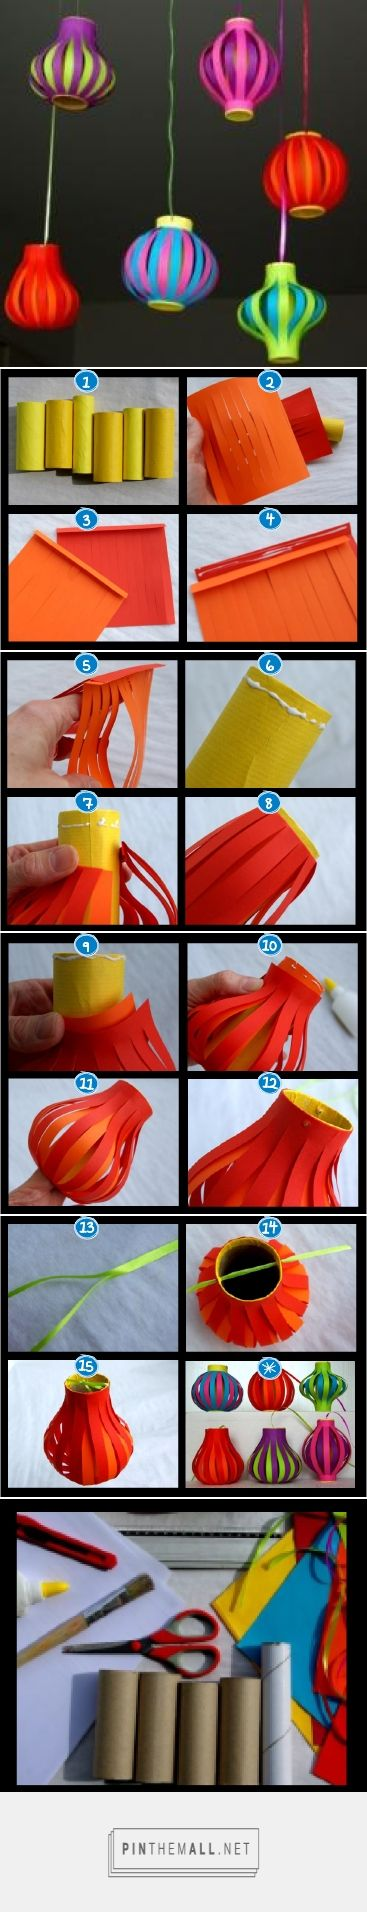 DIY - Un lampion en papier                                                                                                                                                      Plus                                                                                                                                                                                 Plus